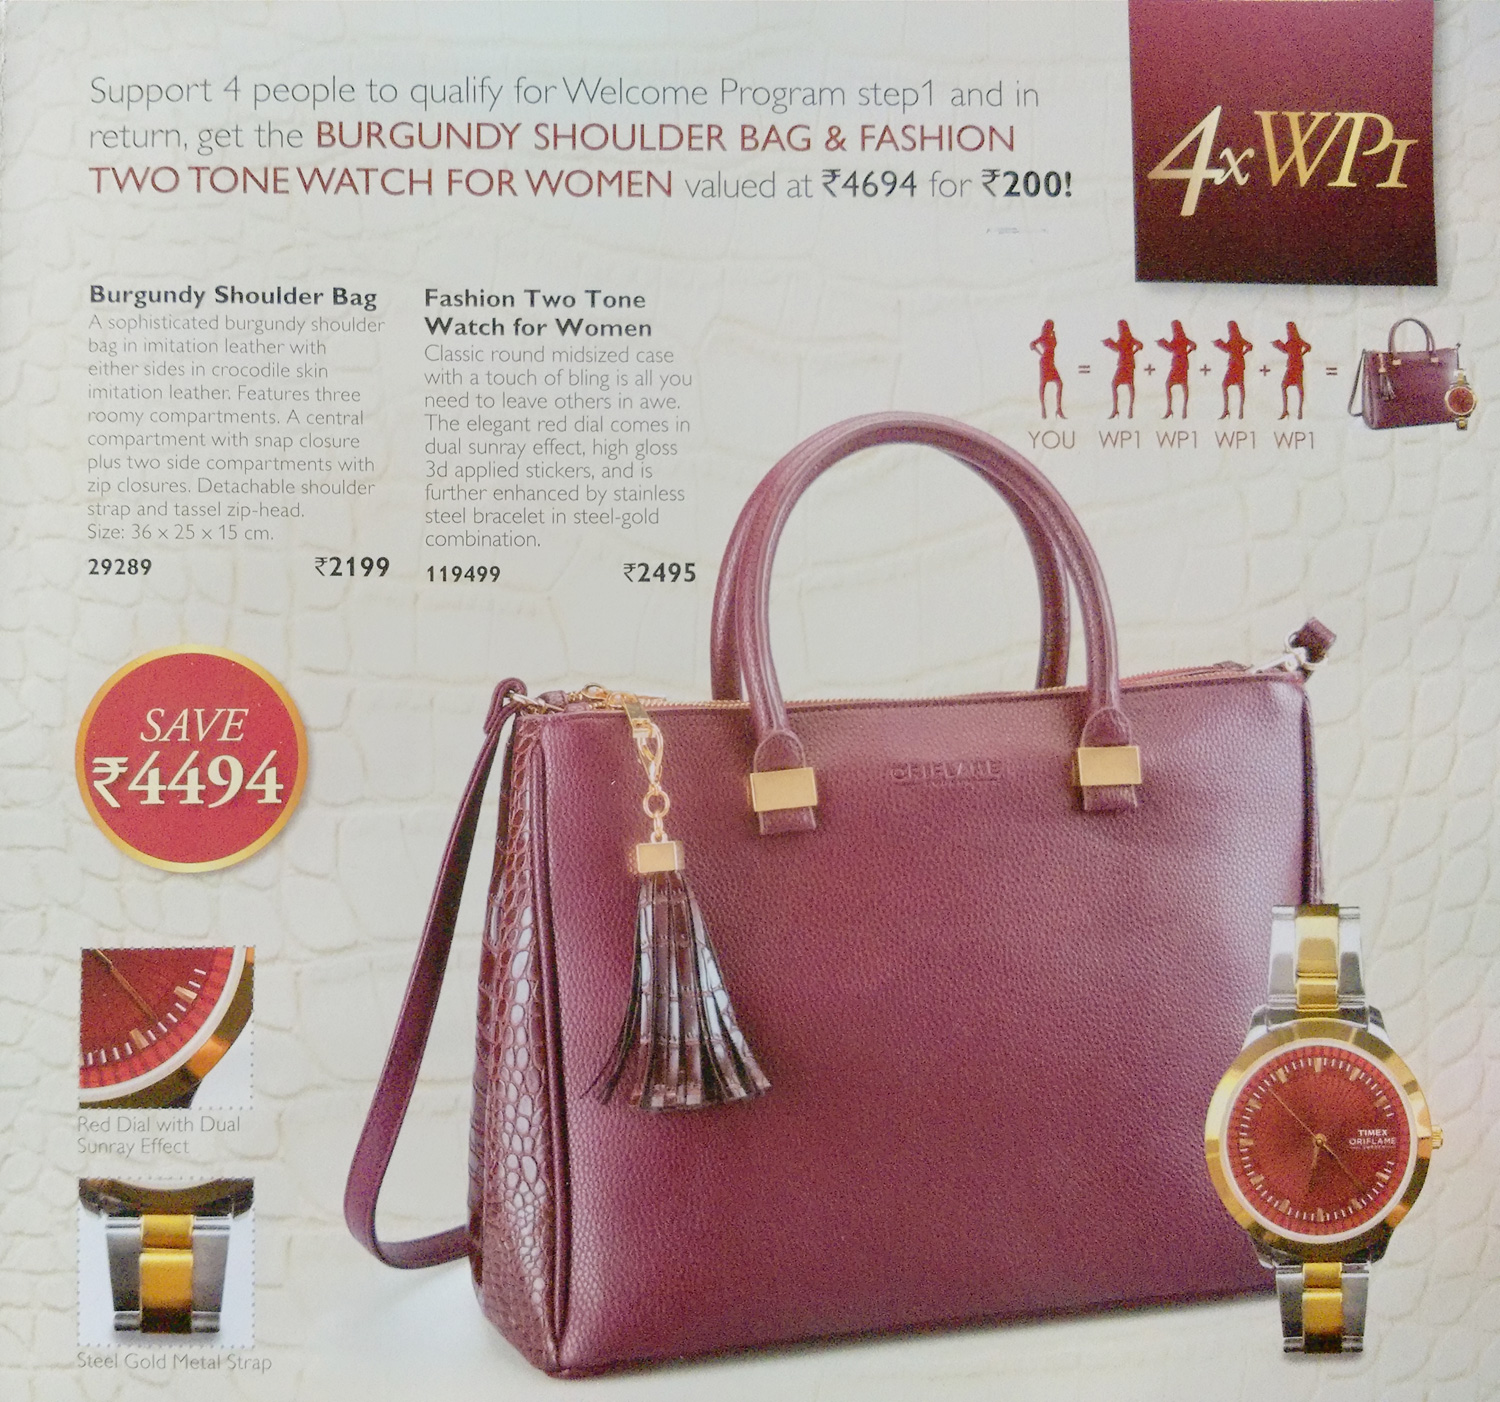 Support 2 People To Qualify For Welcome Program Step1 And In Return Get The Burgundy Shoulder Bag Valued At Rs 2199 200